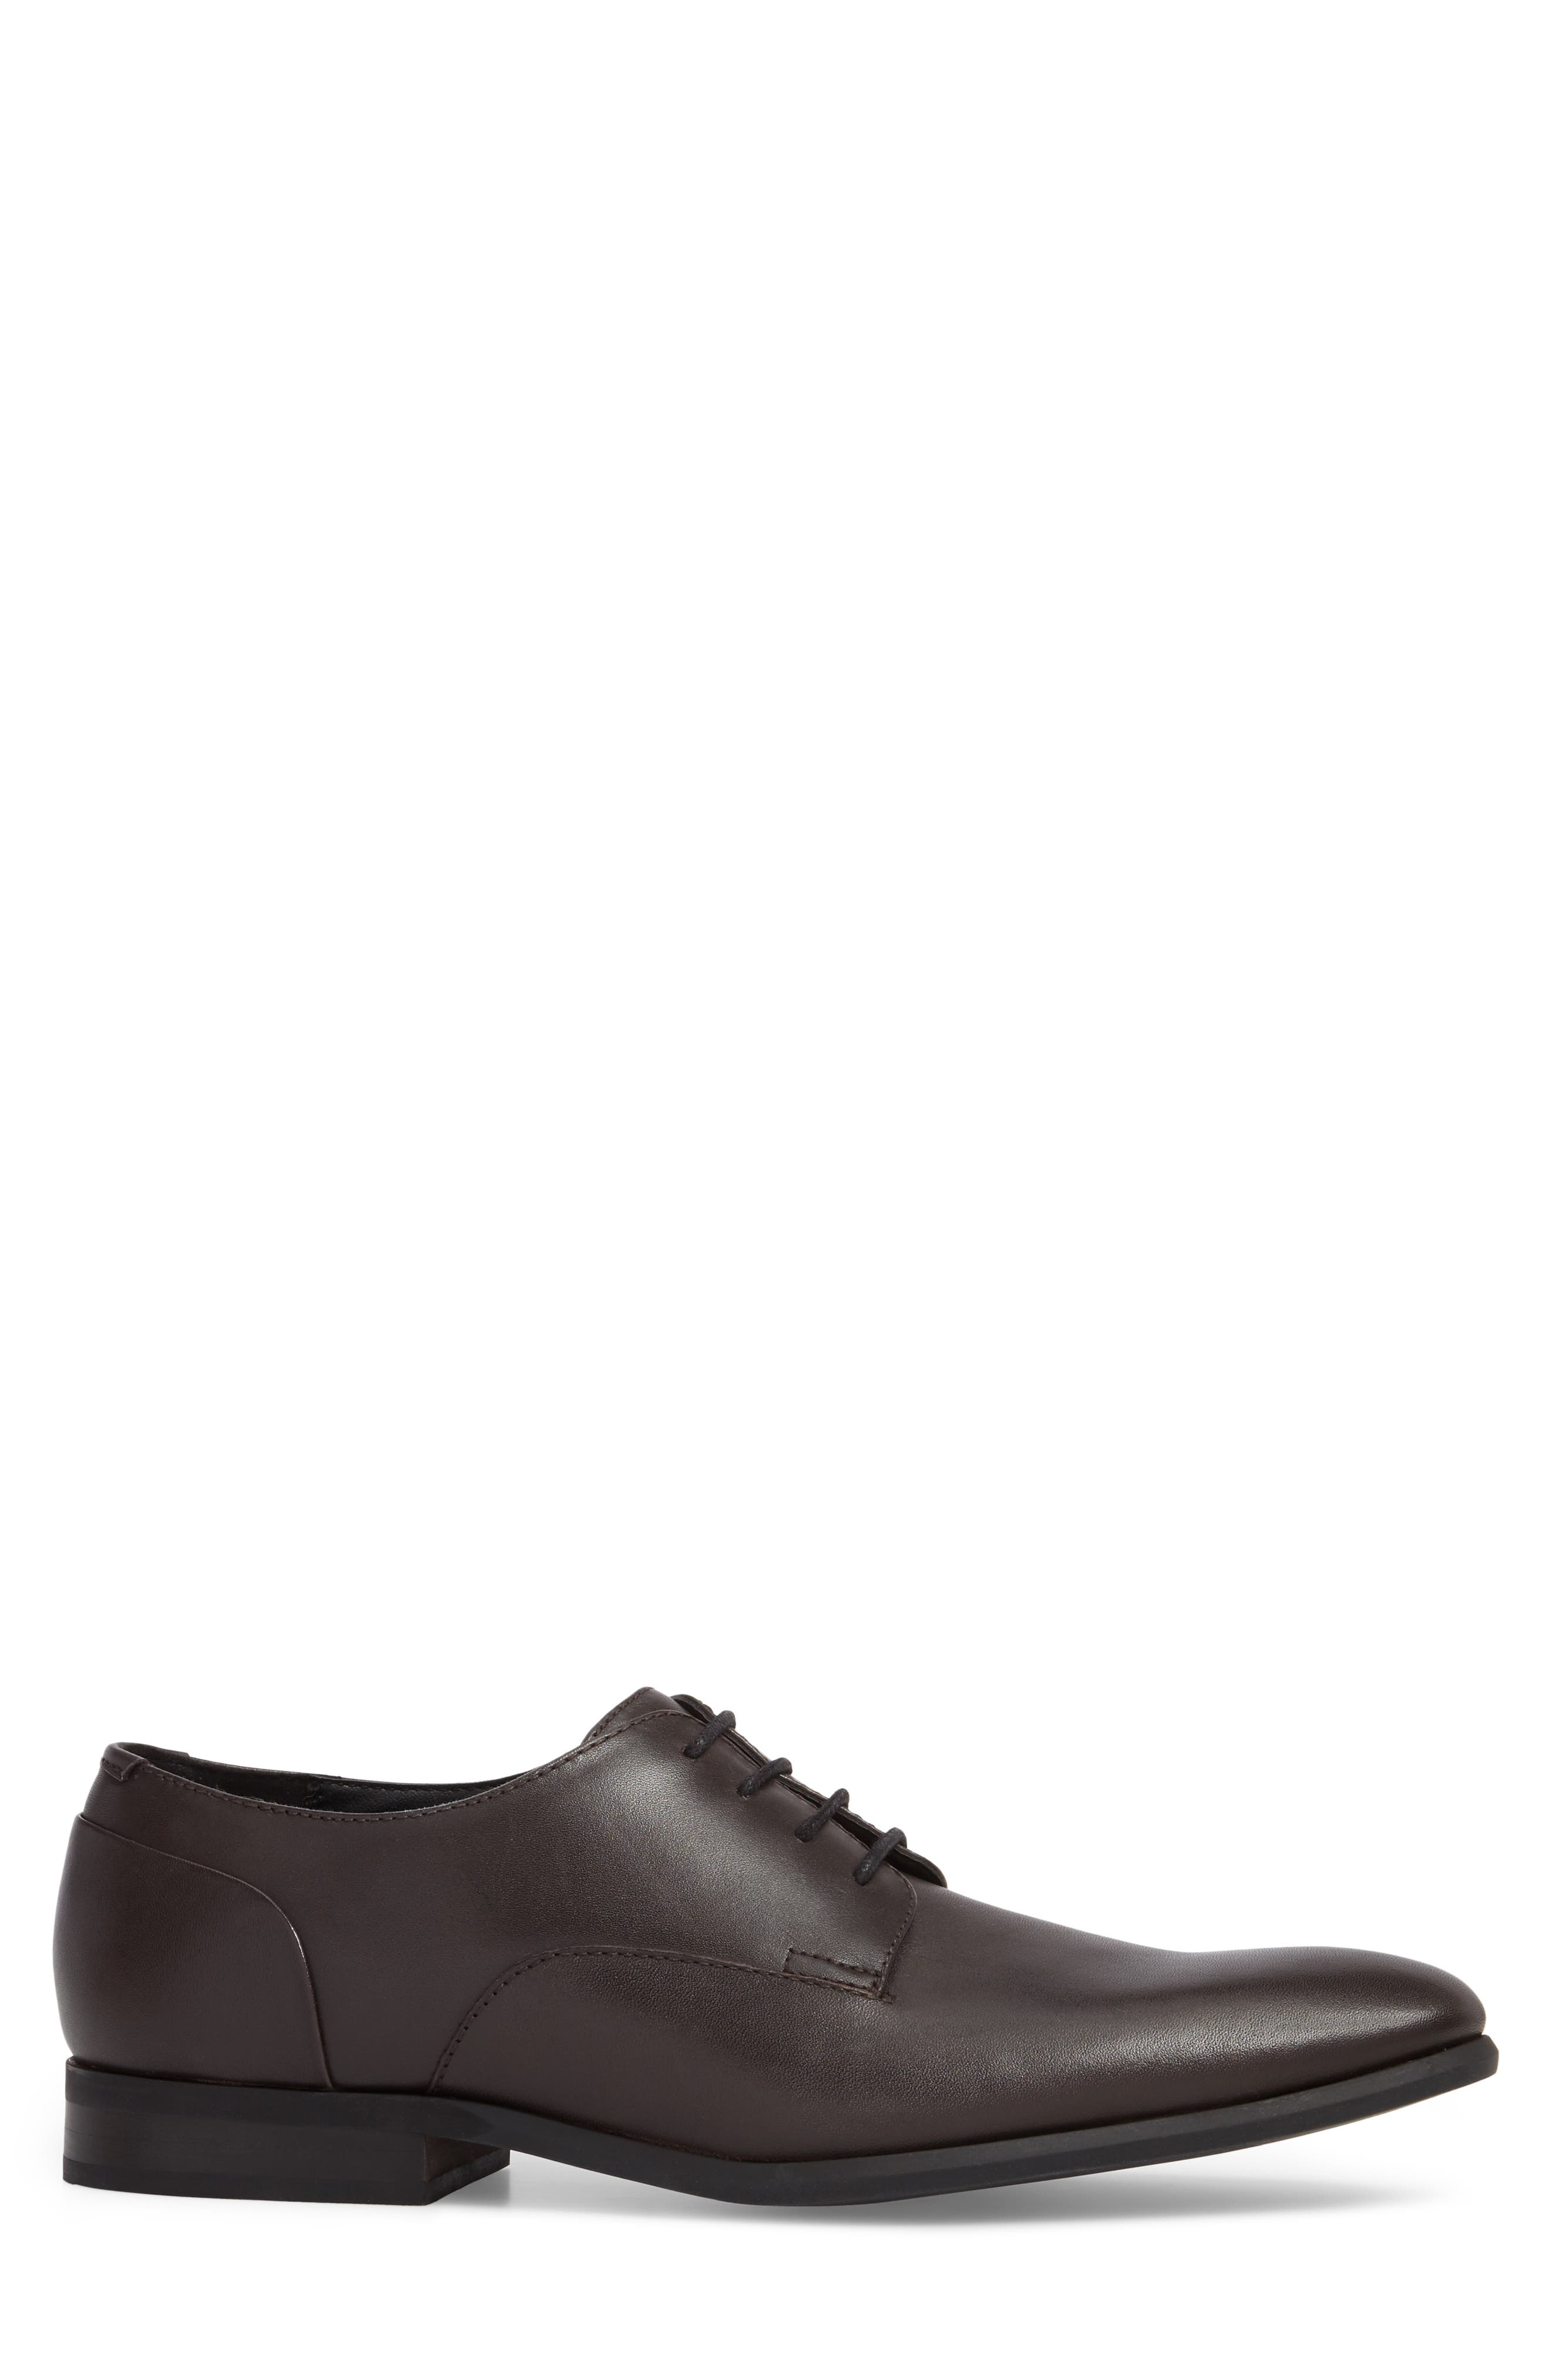 Lucca Plain Toe Derby,                             Alternate thumbnail 3, color,                             Dark Brown Leather